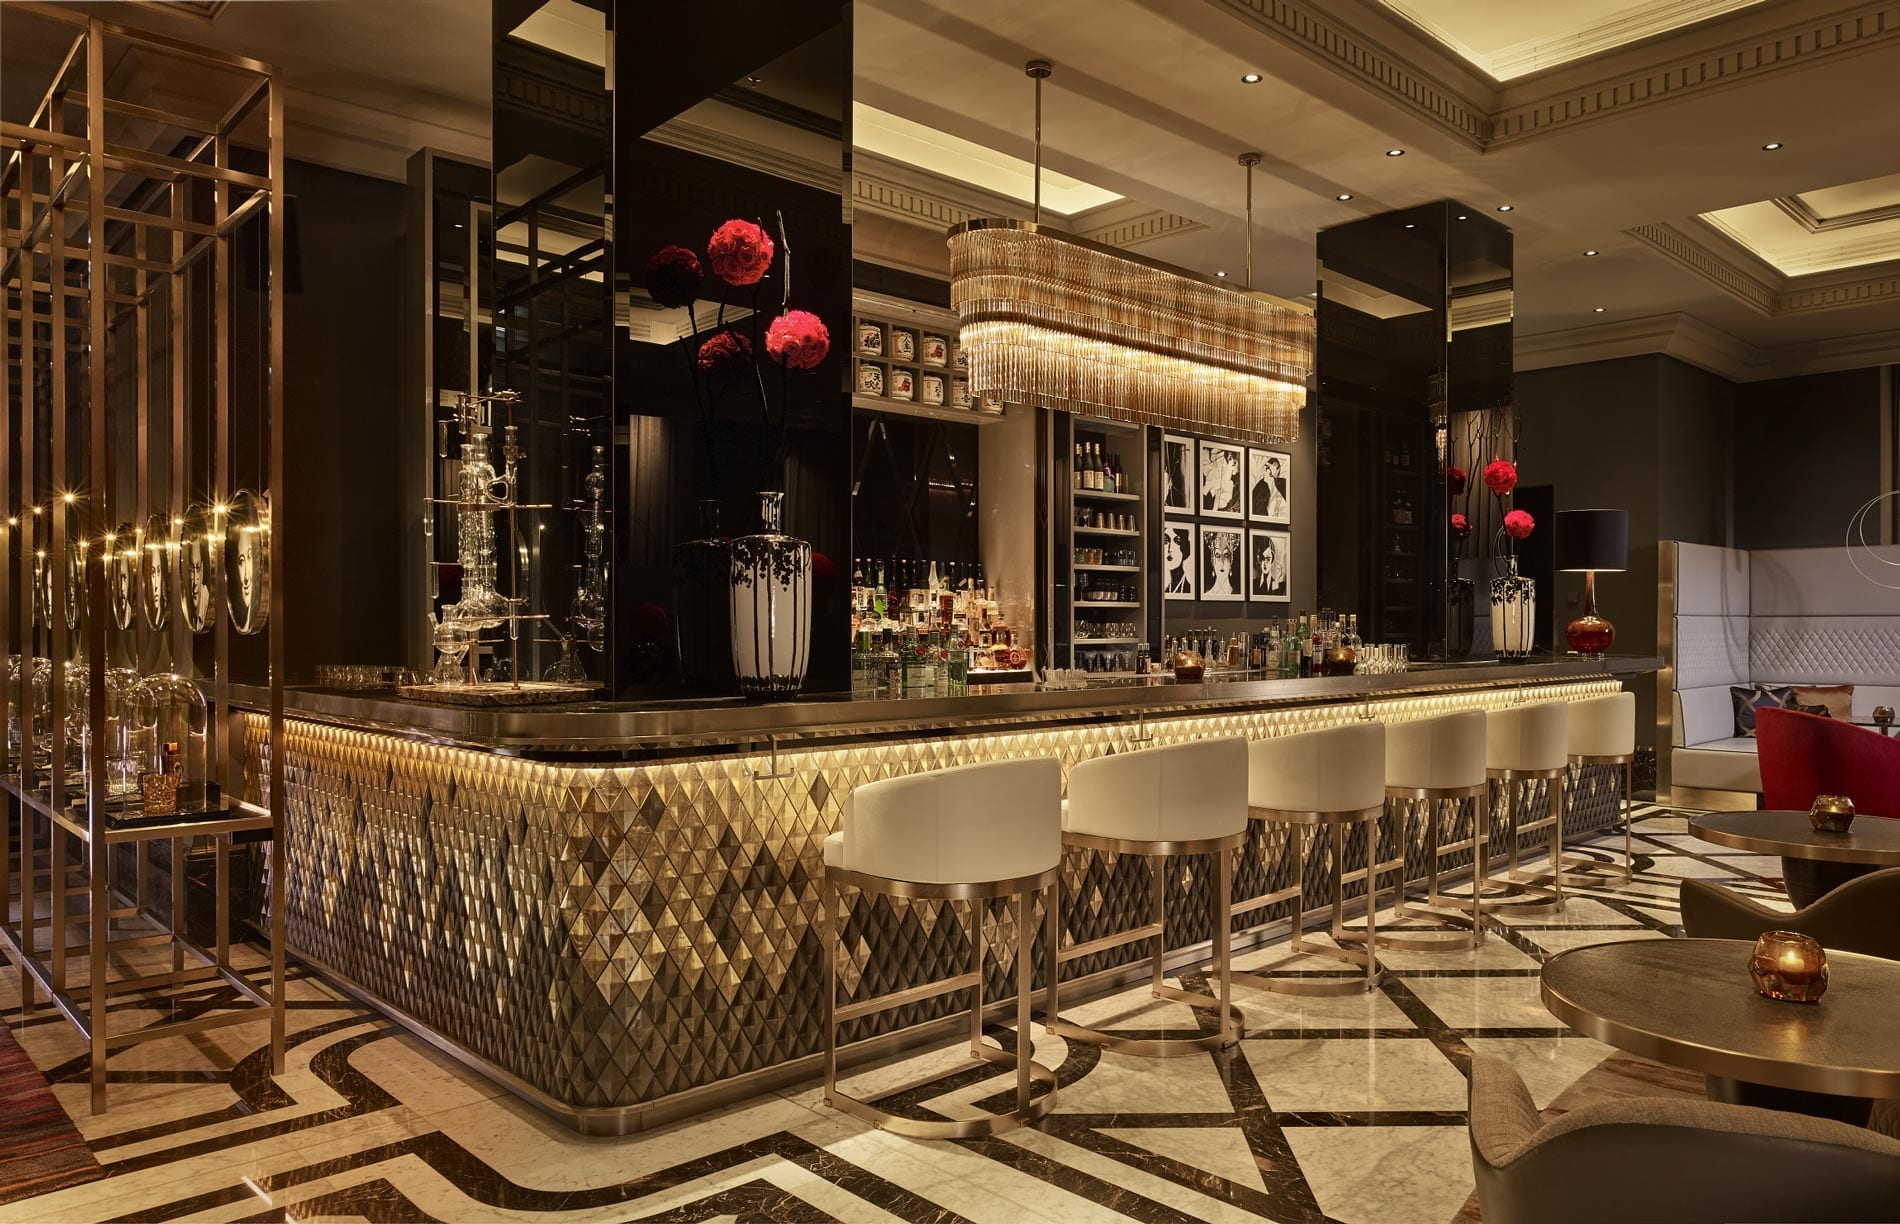 Fragrances Bar im Ritz Carlton Berlin | Arnd Heissen | Mixology — Mixology Magazin für Barkultur